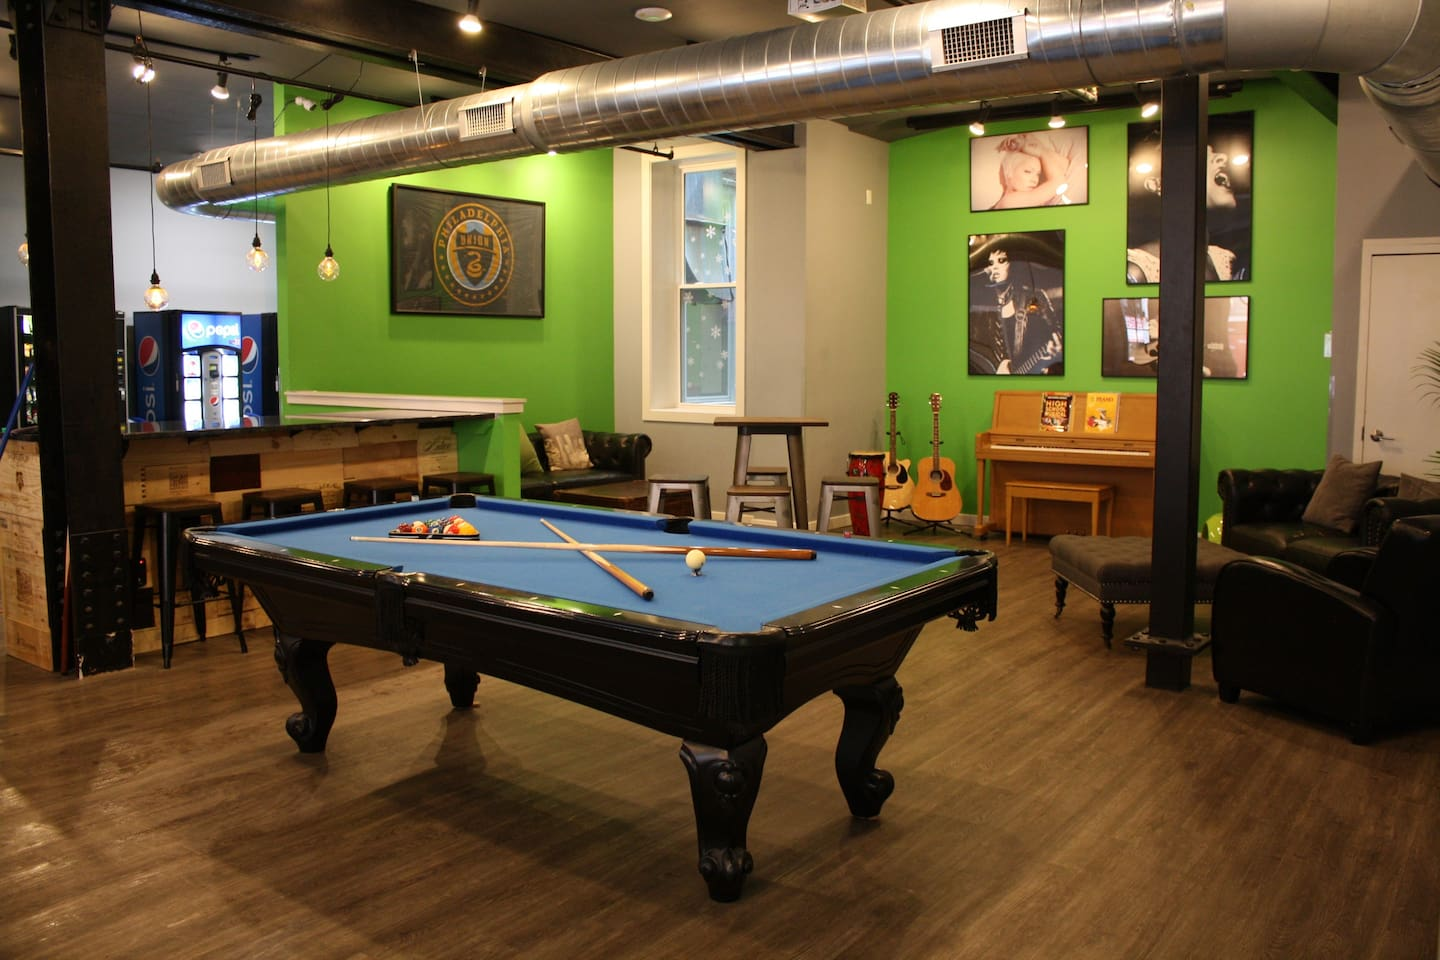 We have a free billiards table in our lounge along with a piano and guitars.